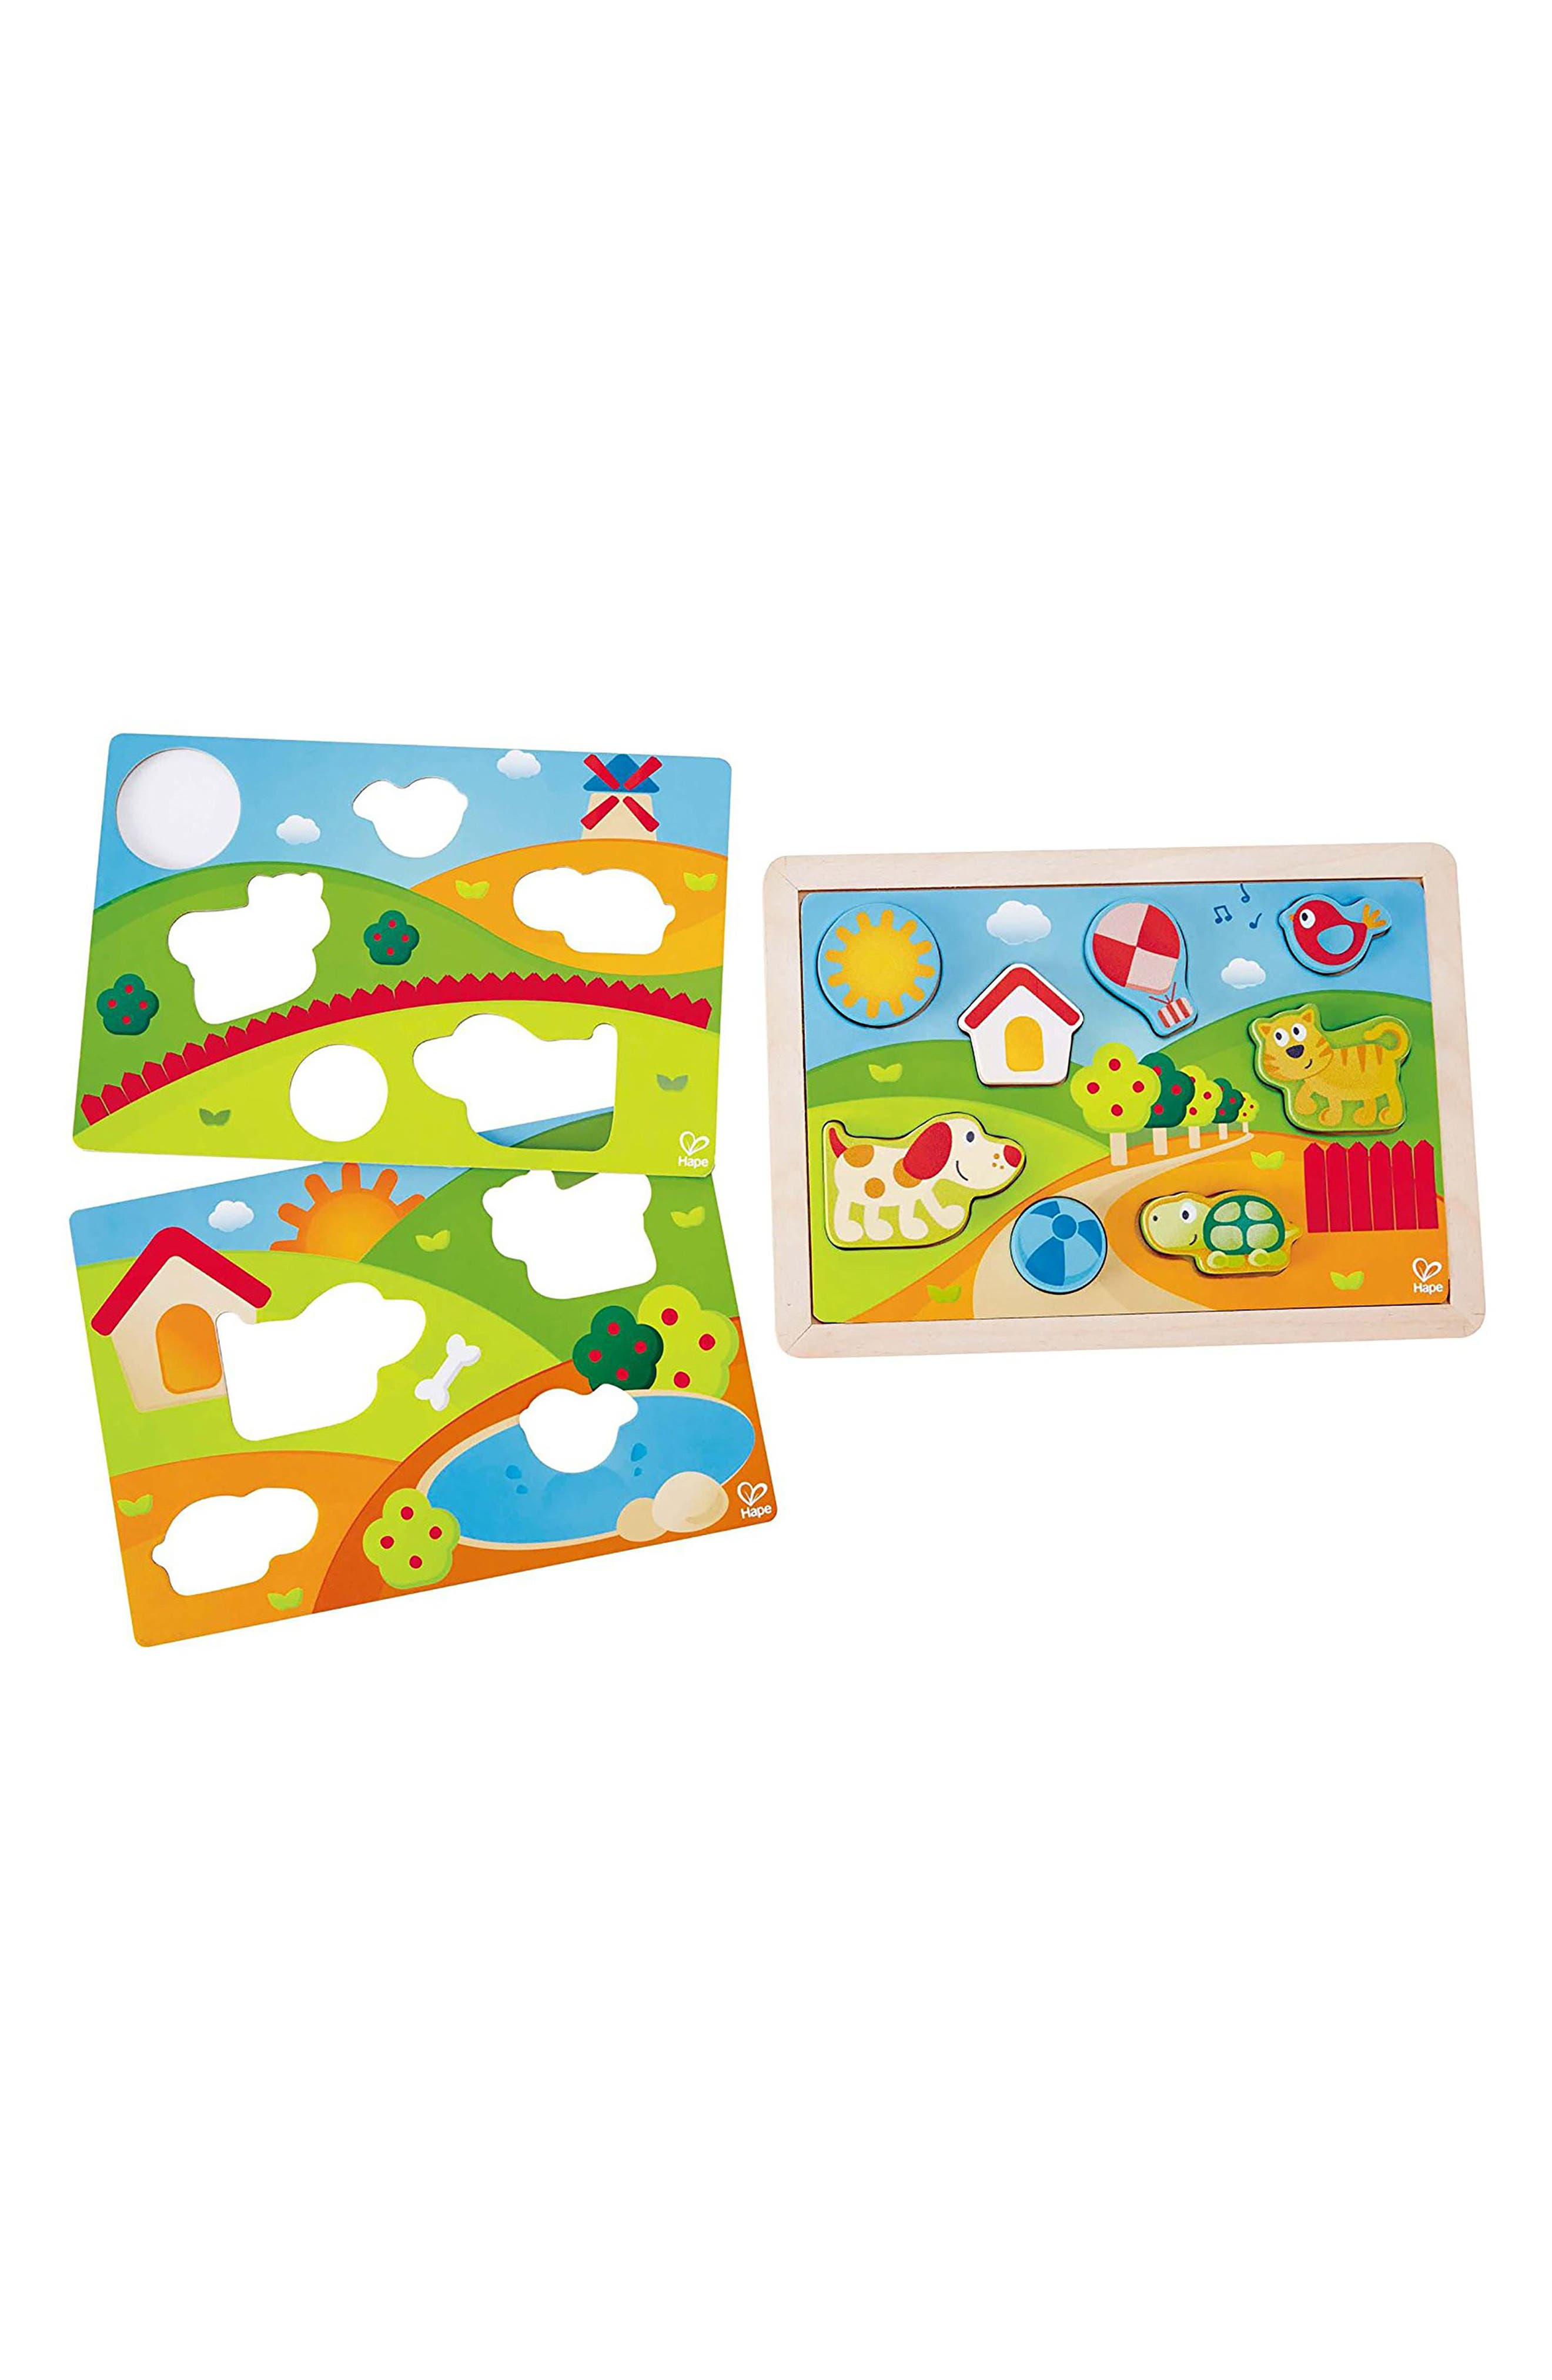 Hape Sunny Valley 3-in-1 Puzzle